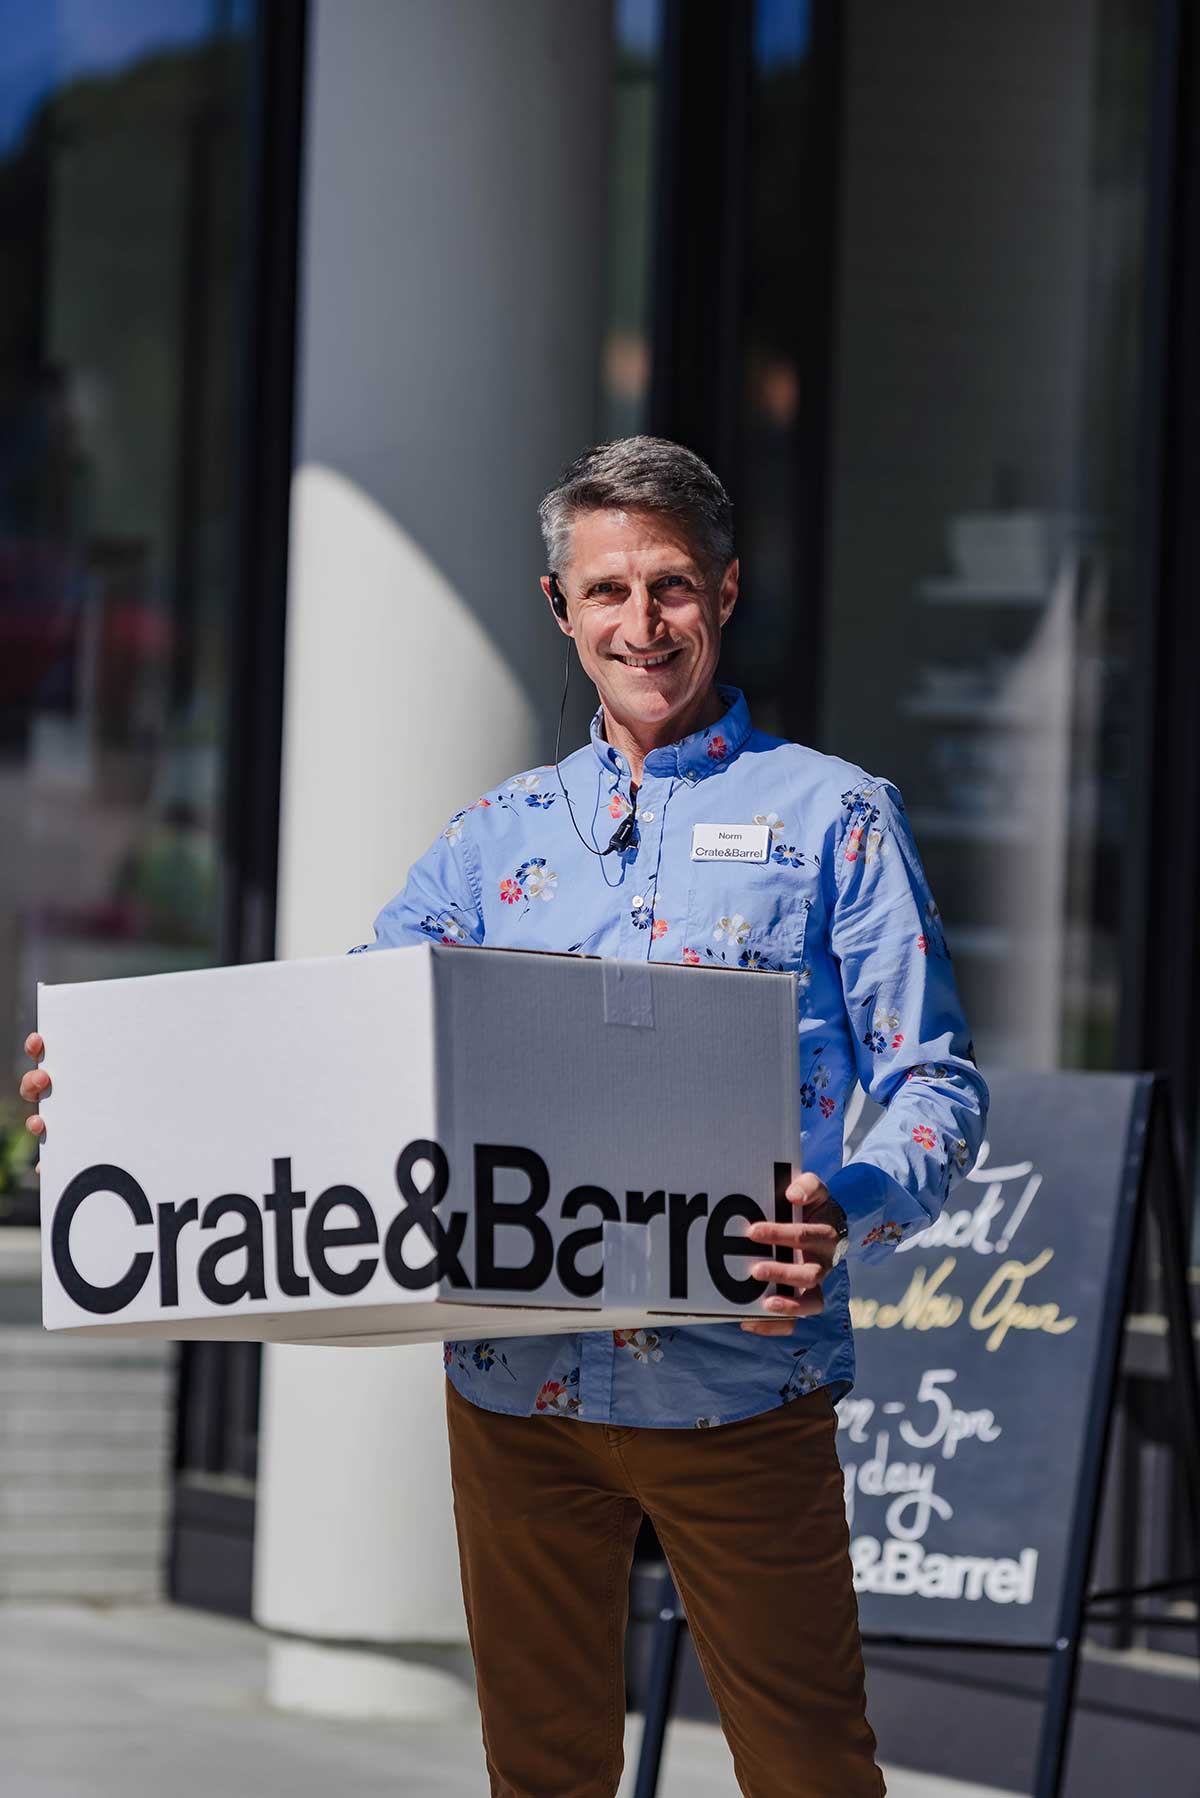 Employee outside of Crate & Barrel